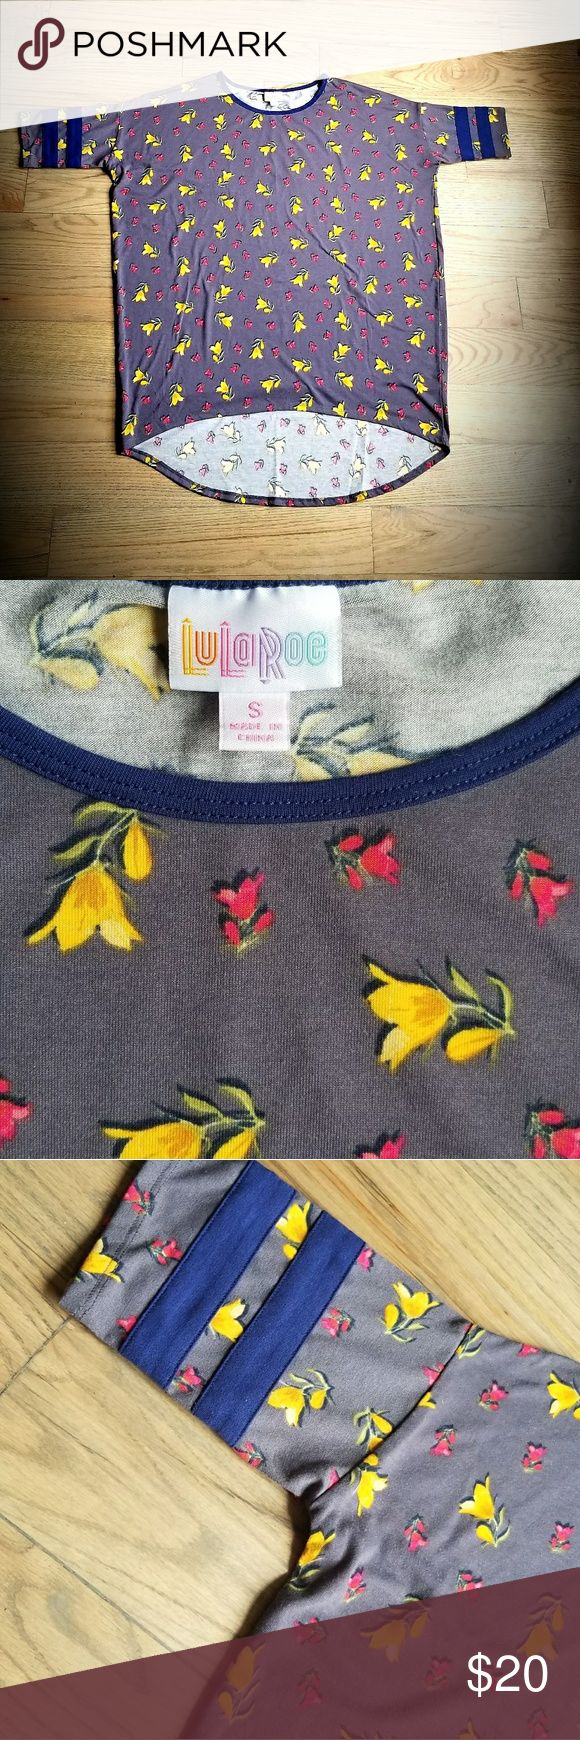 "Lularoe Irma Lularoe Irma is a loose knit hi/low ""tunic"" top. Perfect to wear with leggings. Grayish/blue background with yellow and pink flowers. Baseball sleeve, stripes are navy blue. Size small. These tops run big so size down a size. Smoke and pet free home. 96% polyester 4% spandex. Machine wash and hand to dry. LuLaRoe Tops"